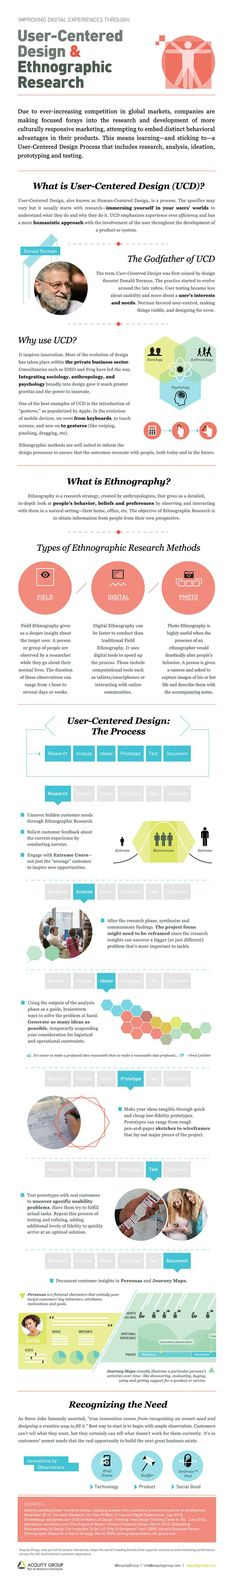 Business infographic : INFOGRAPHIC: User-Centered Design & Ethnographic Research